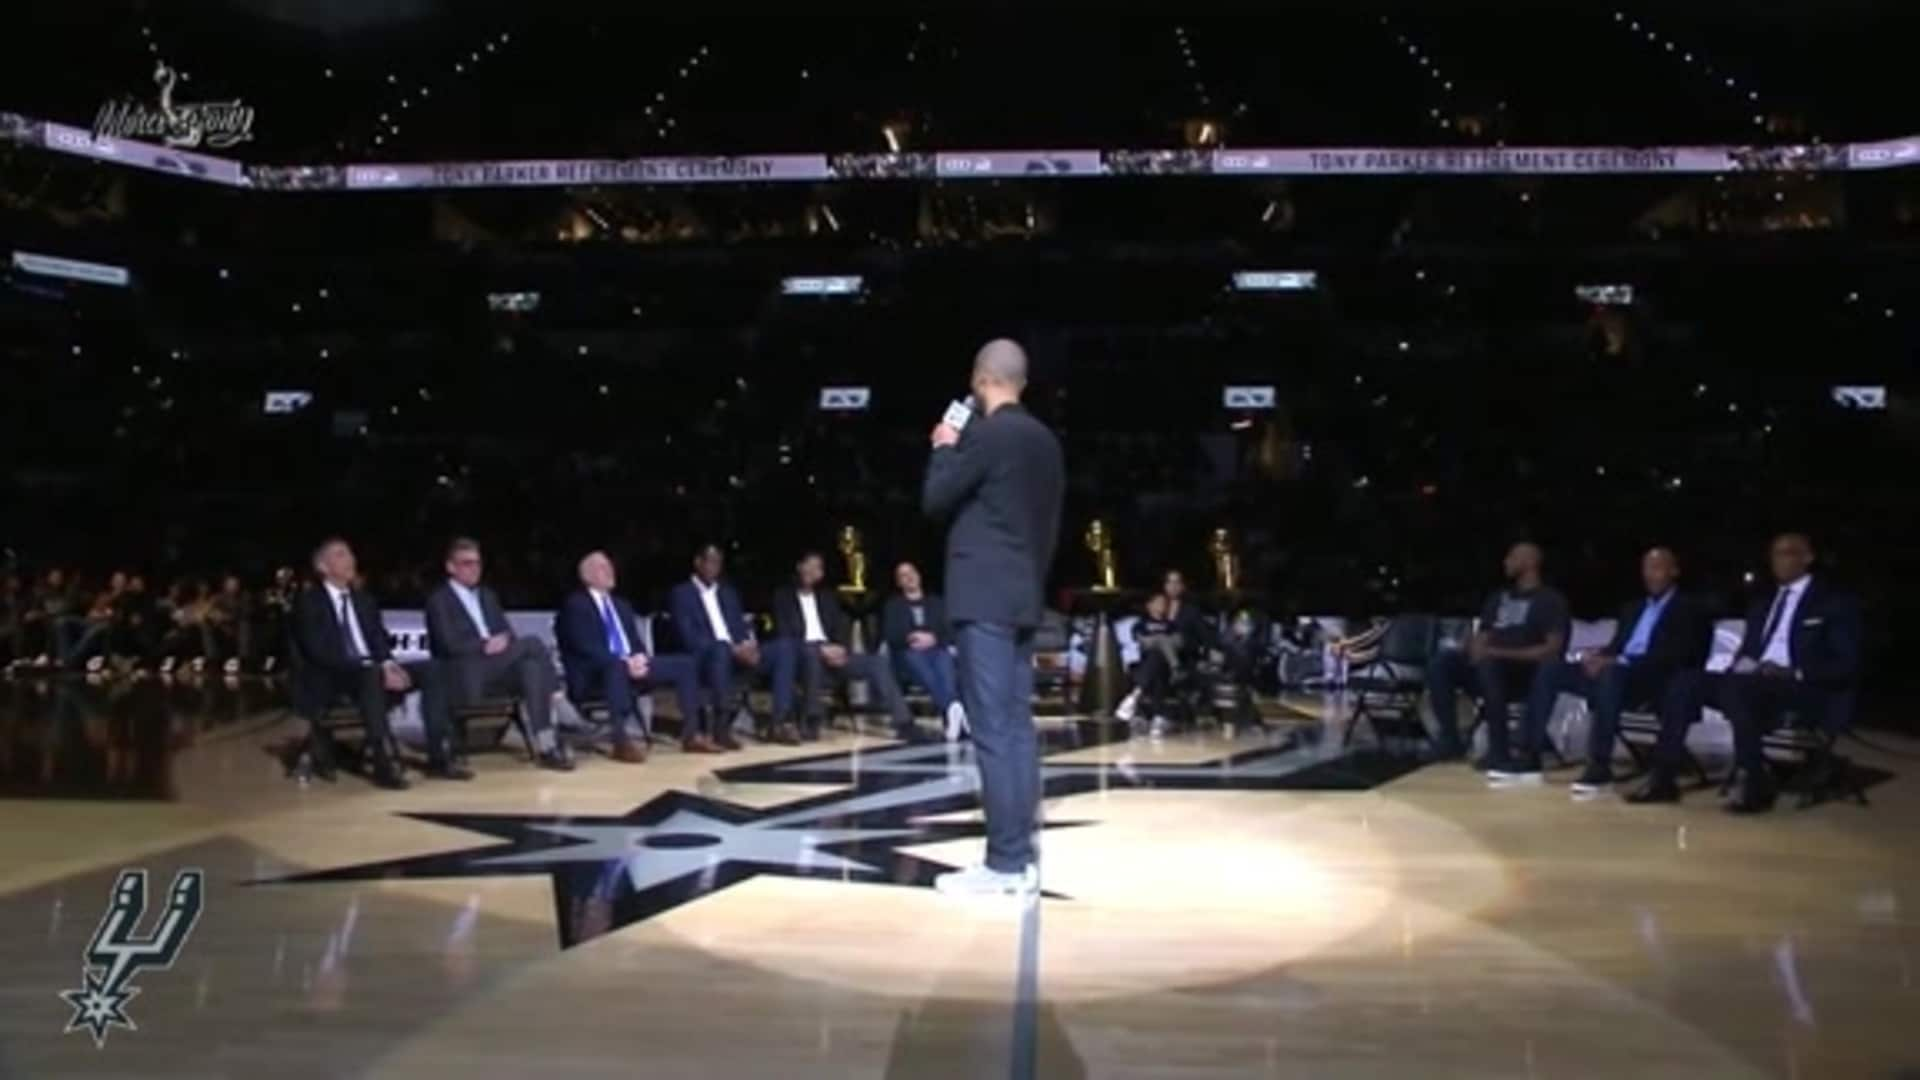 Tony Parker's Speech